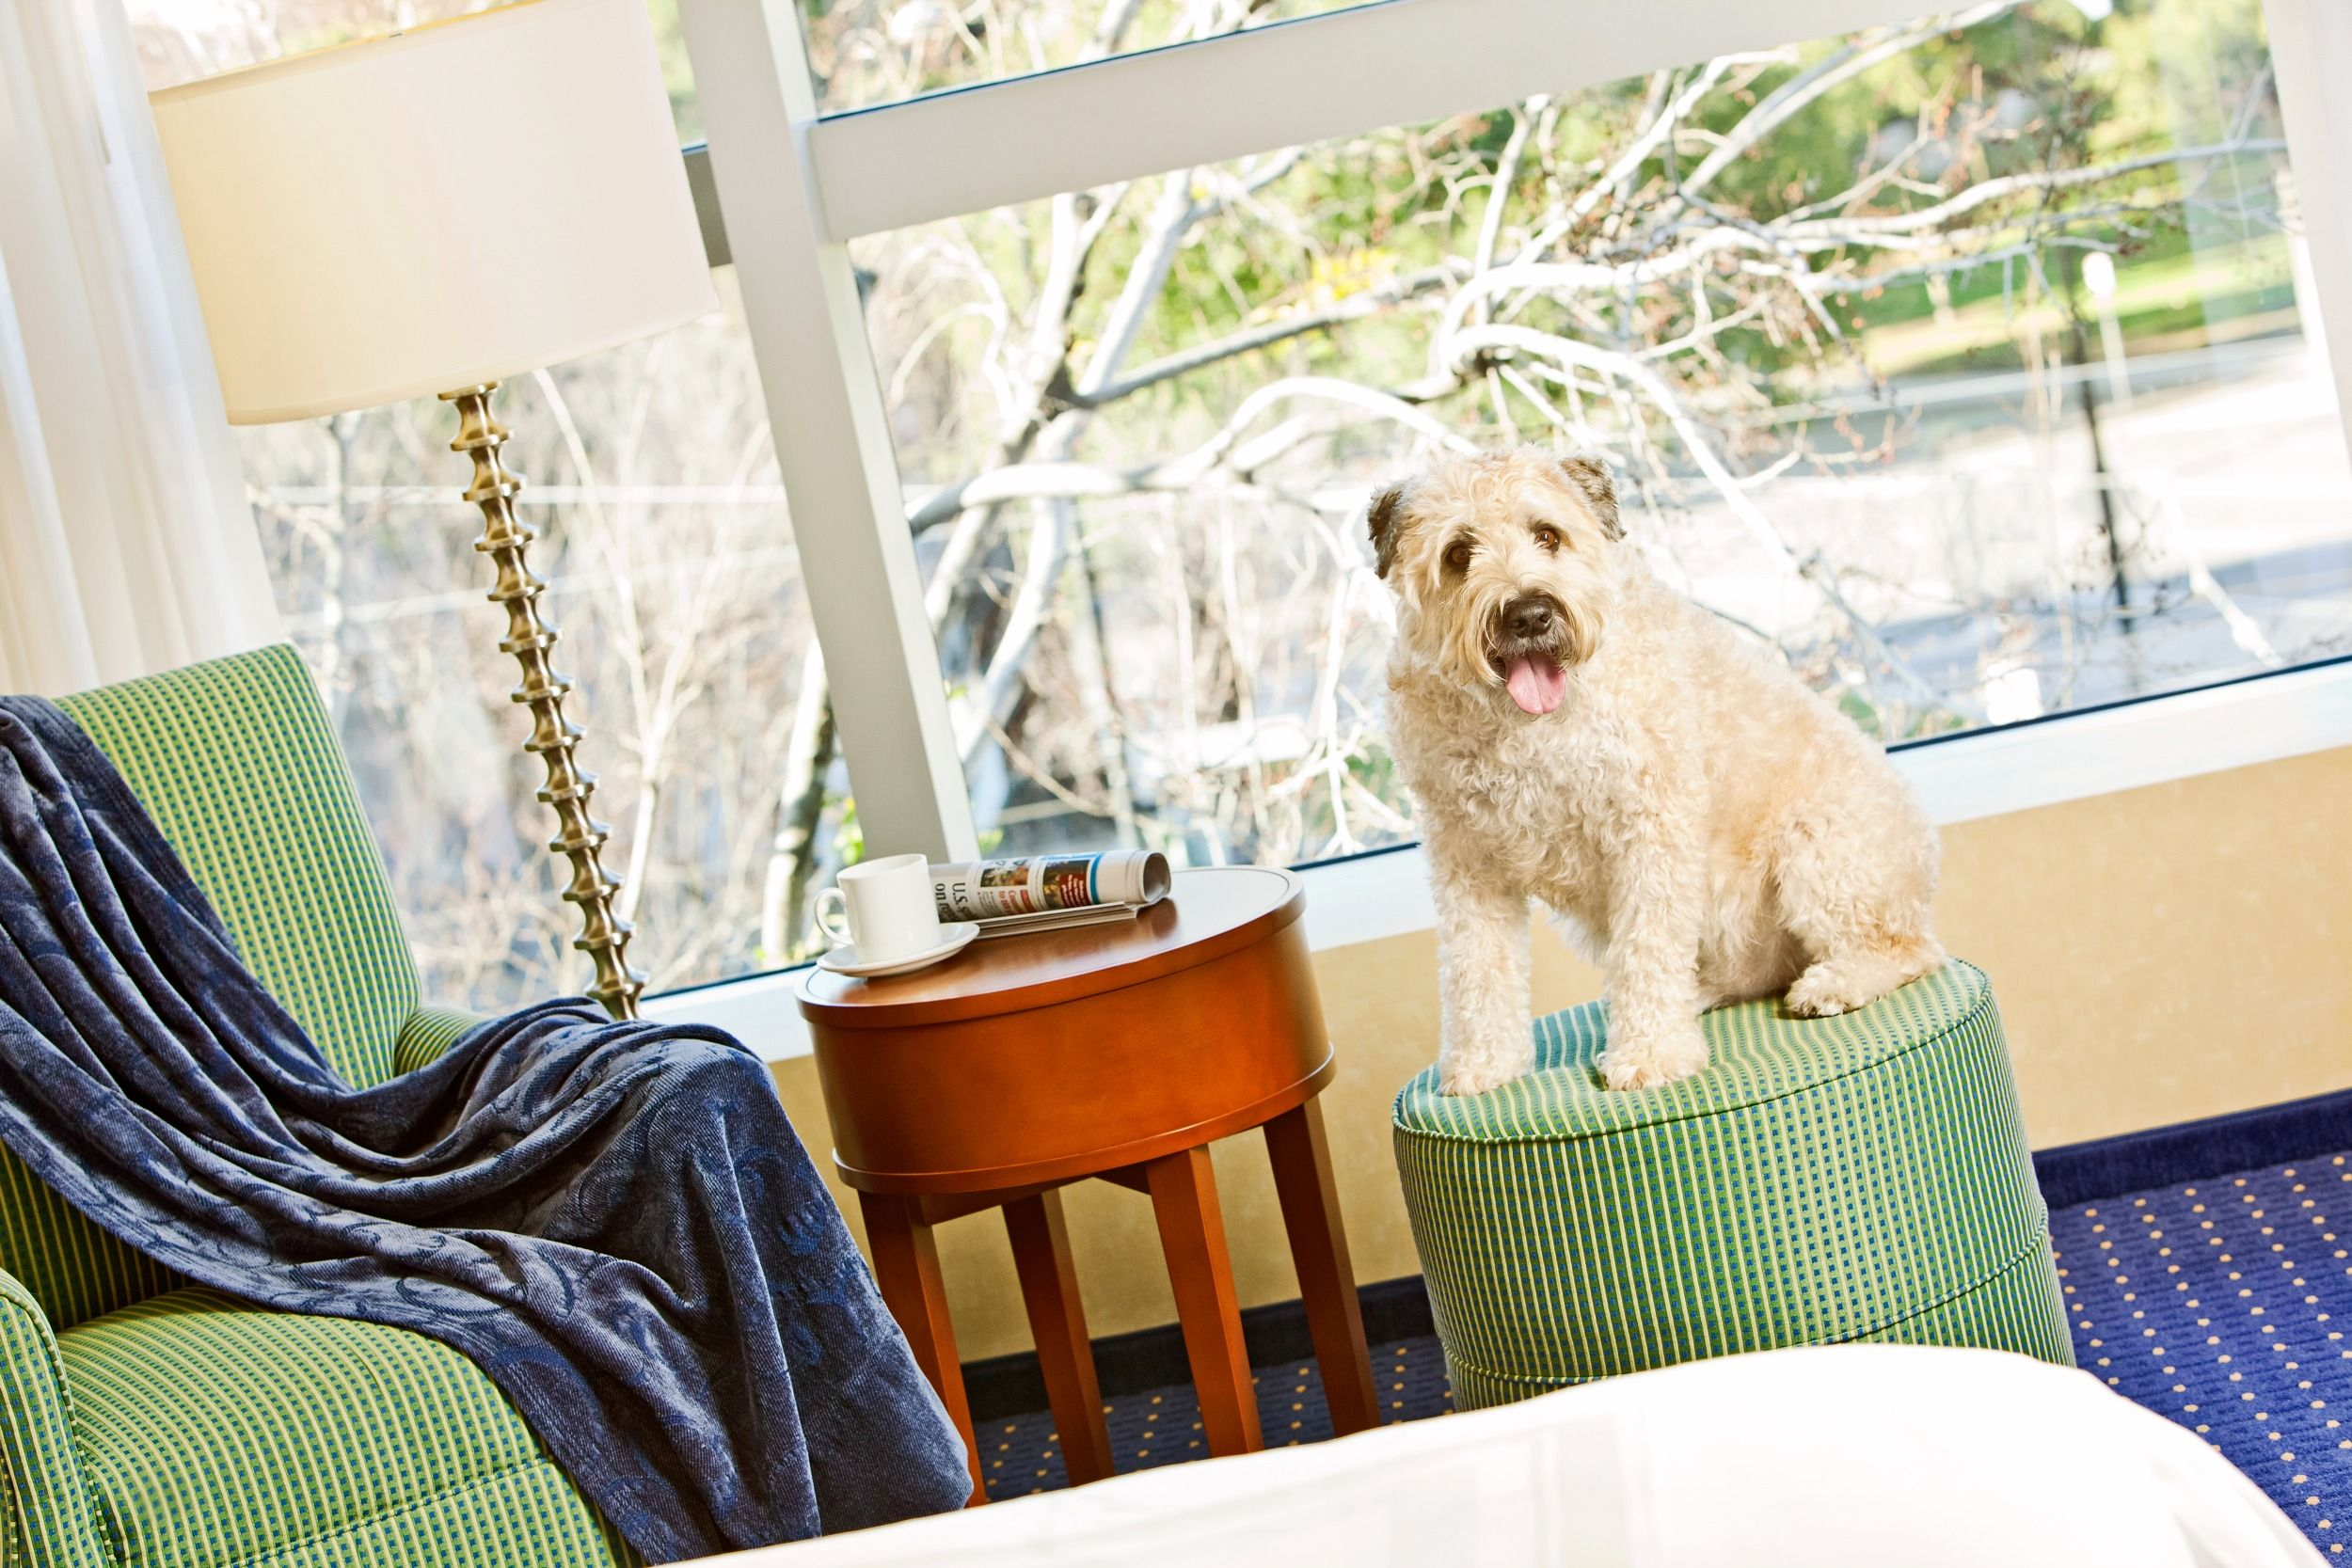 The San Jose Marriott Is A Pet Friendly Hotel Where Your Best Man Can Stay The Night Wedding With Images Pet Friendly Hotels Marriott Downtown Hotels